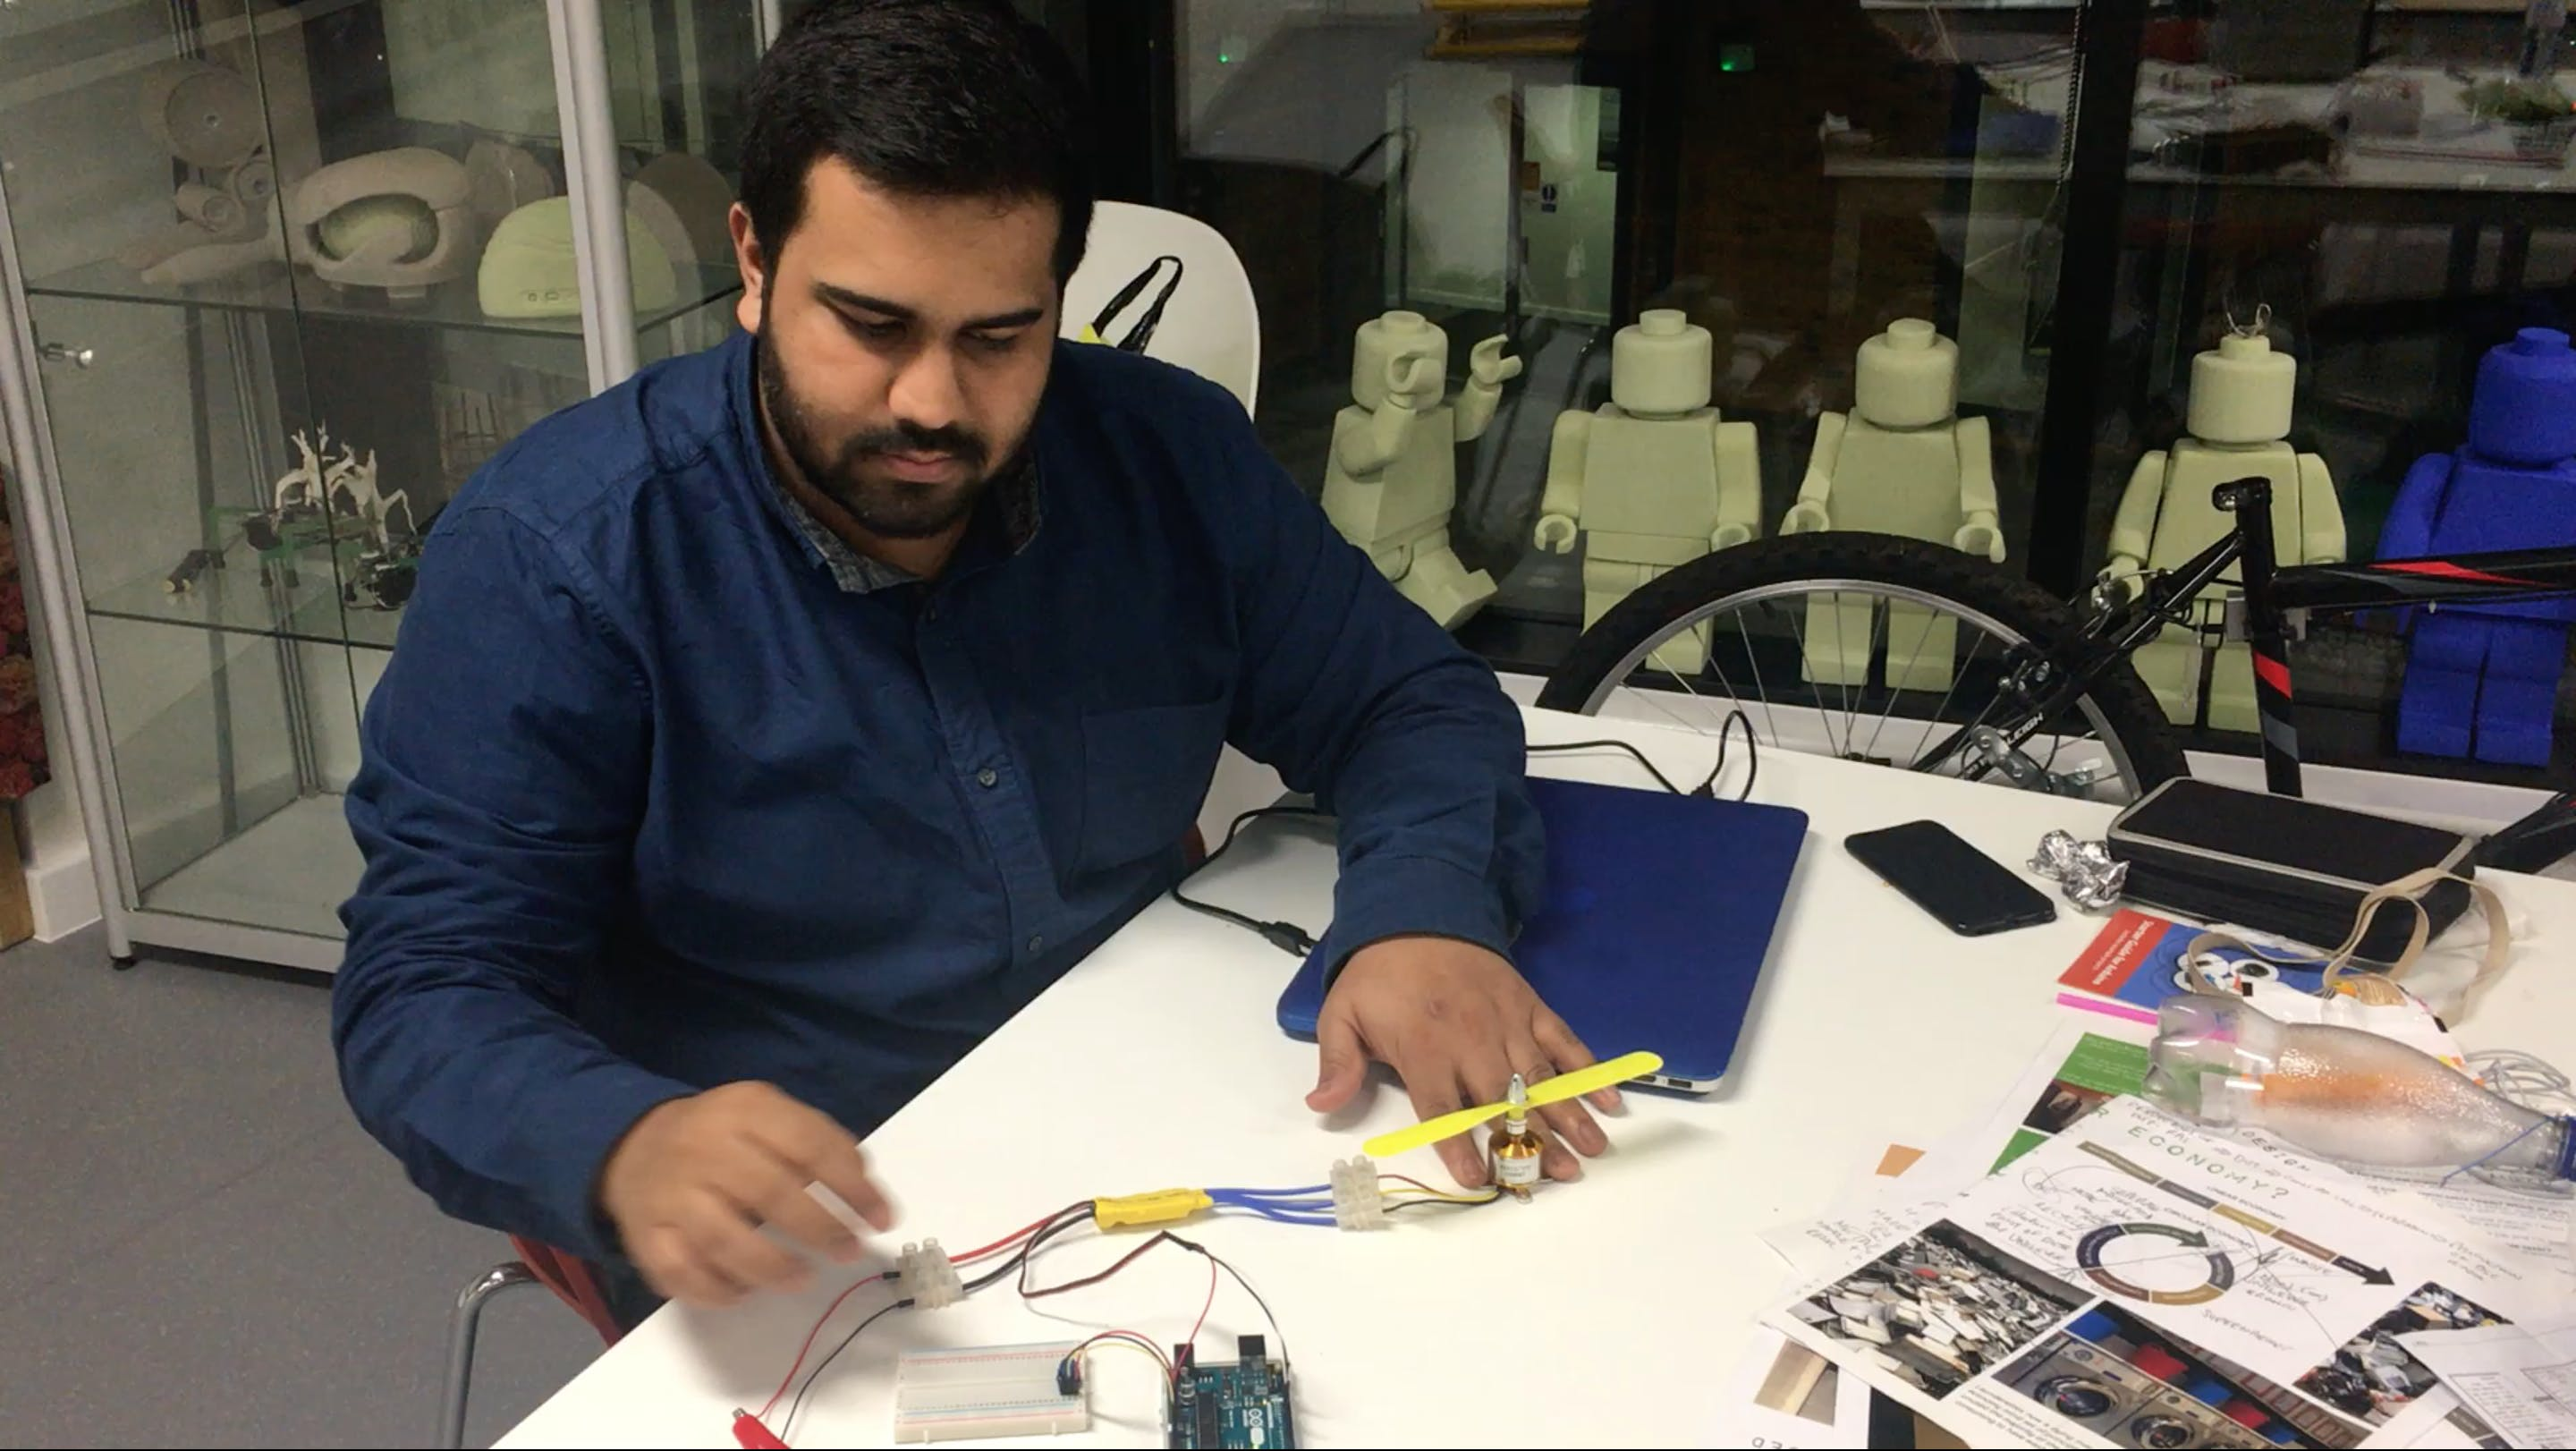 Testing out the Arduino Uno, Brushless Drone Motor with ESC using a breadboard & potentiometer